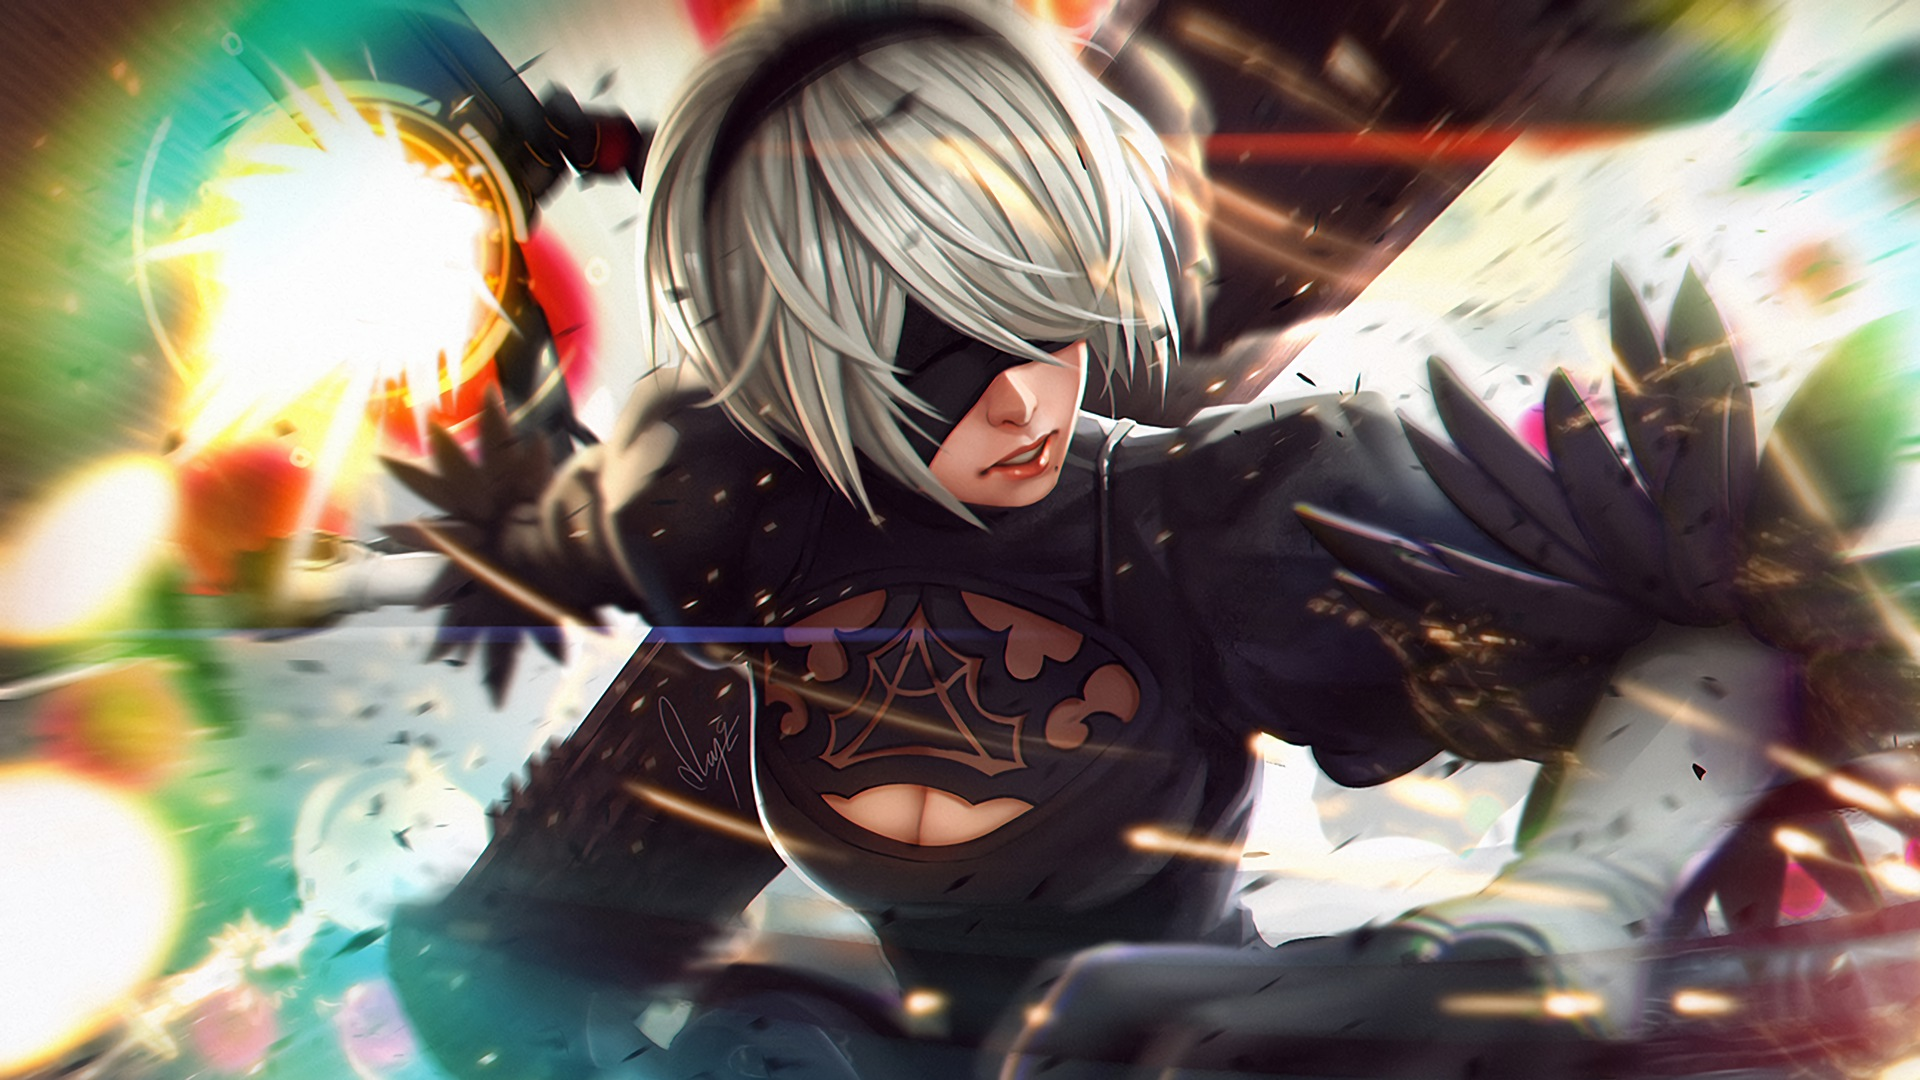 Hd wallpaper nier automata - Video Game Nier Automata Yorha No 2 Type B Wallpaper